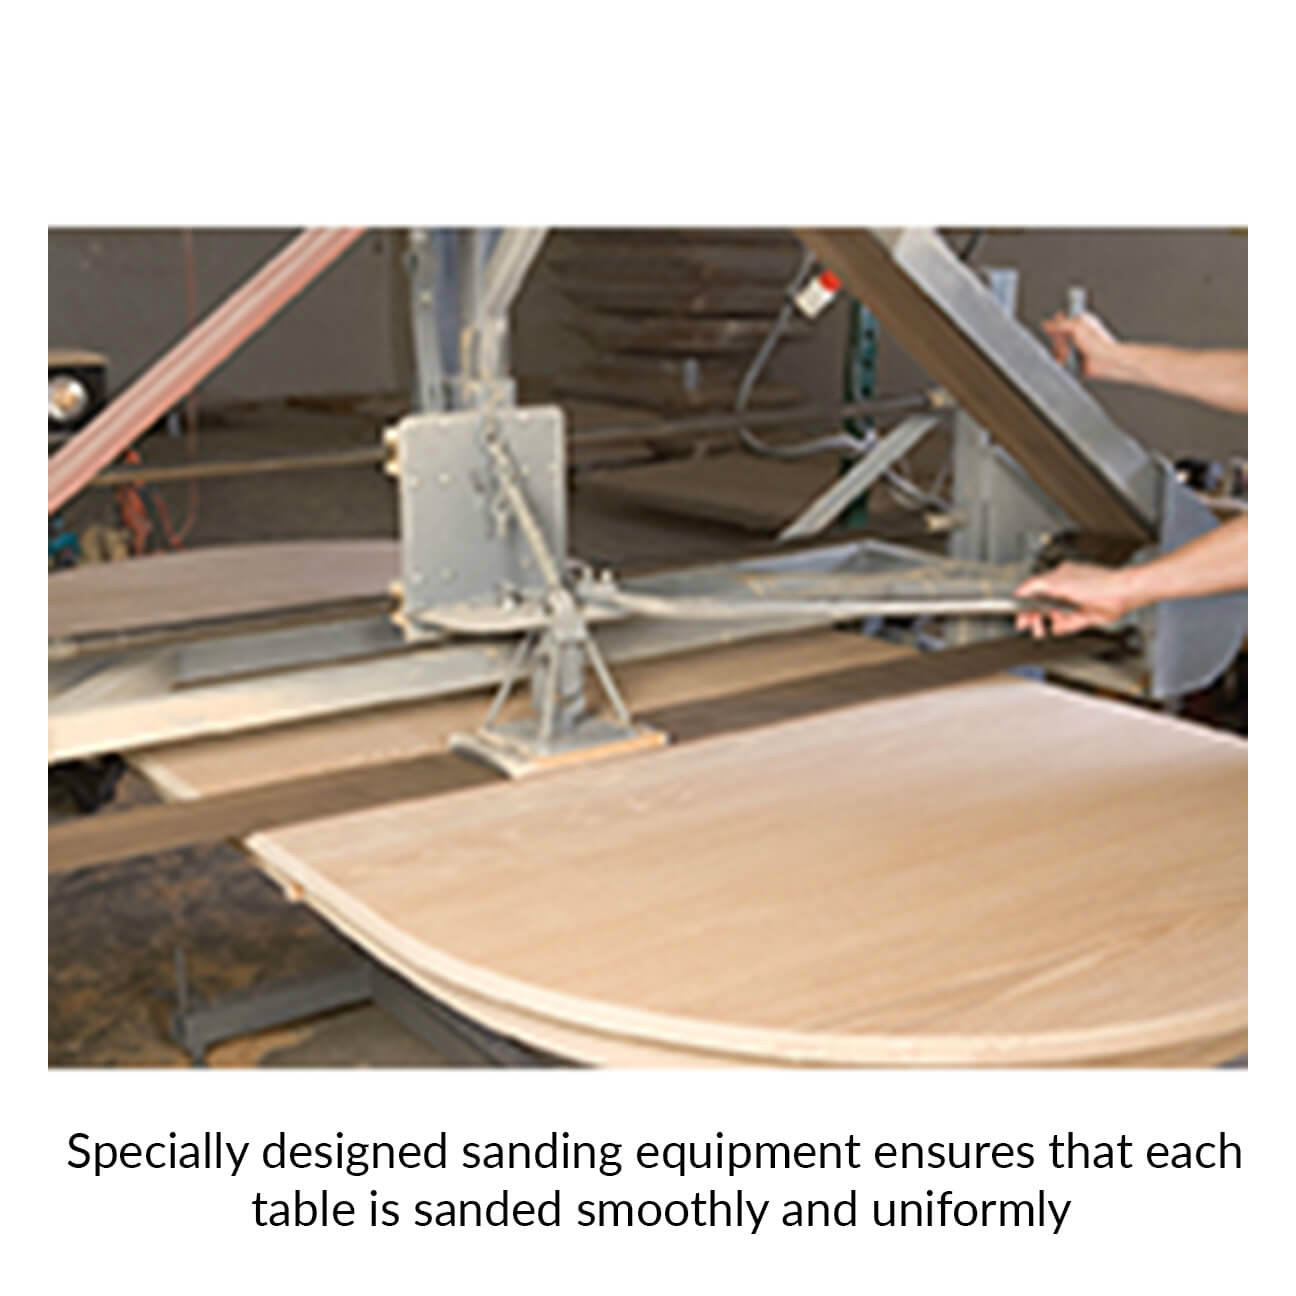 0.4-specially-designed-sanding-equipment-ensures-that-each-table-is-sanded-smoothly-and-uniformly-copy.jpg